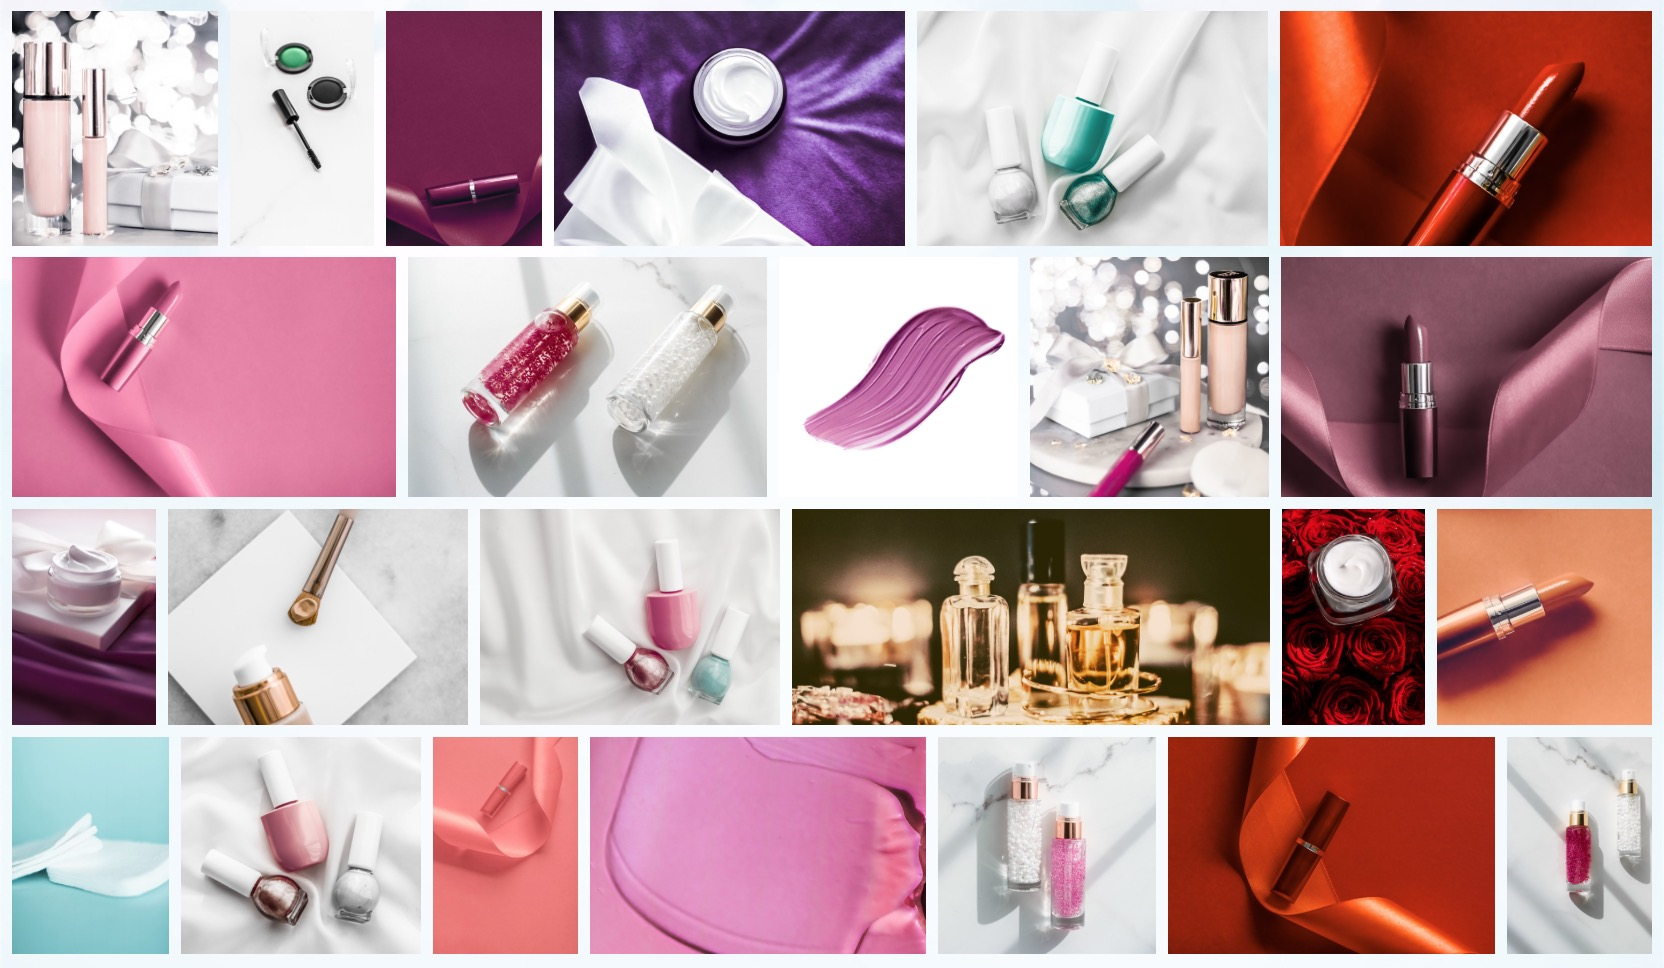 50 Images | Beauty & Make-Up Stock Photo Bundle #1 example image 3